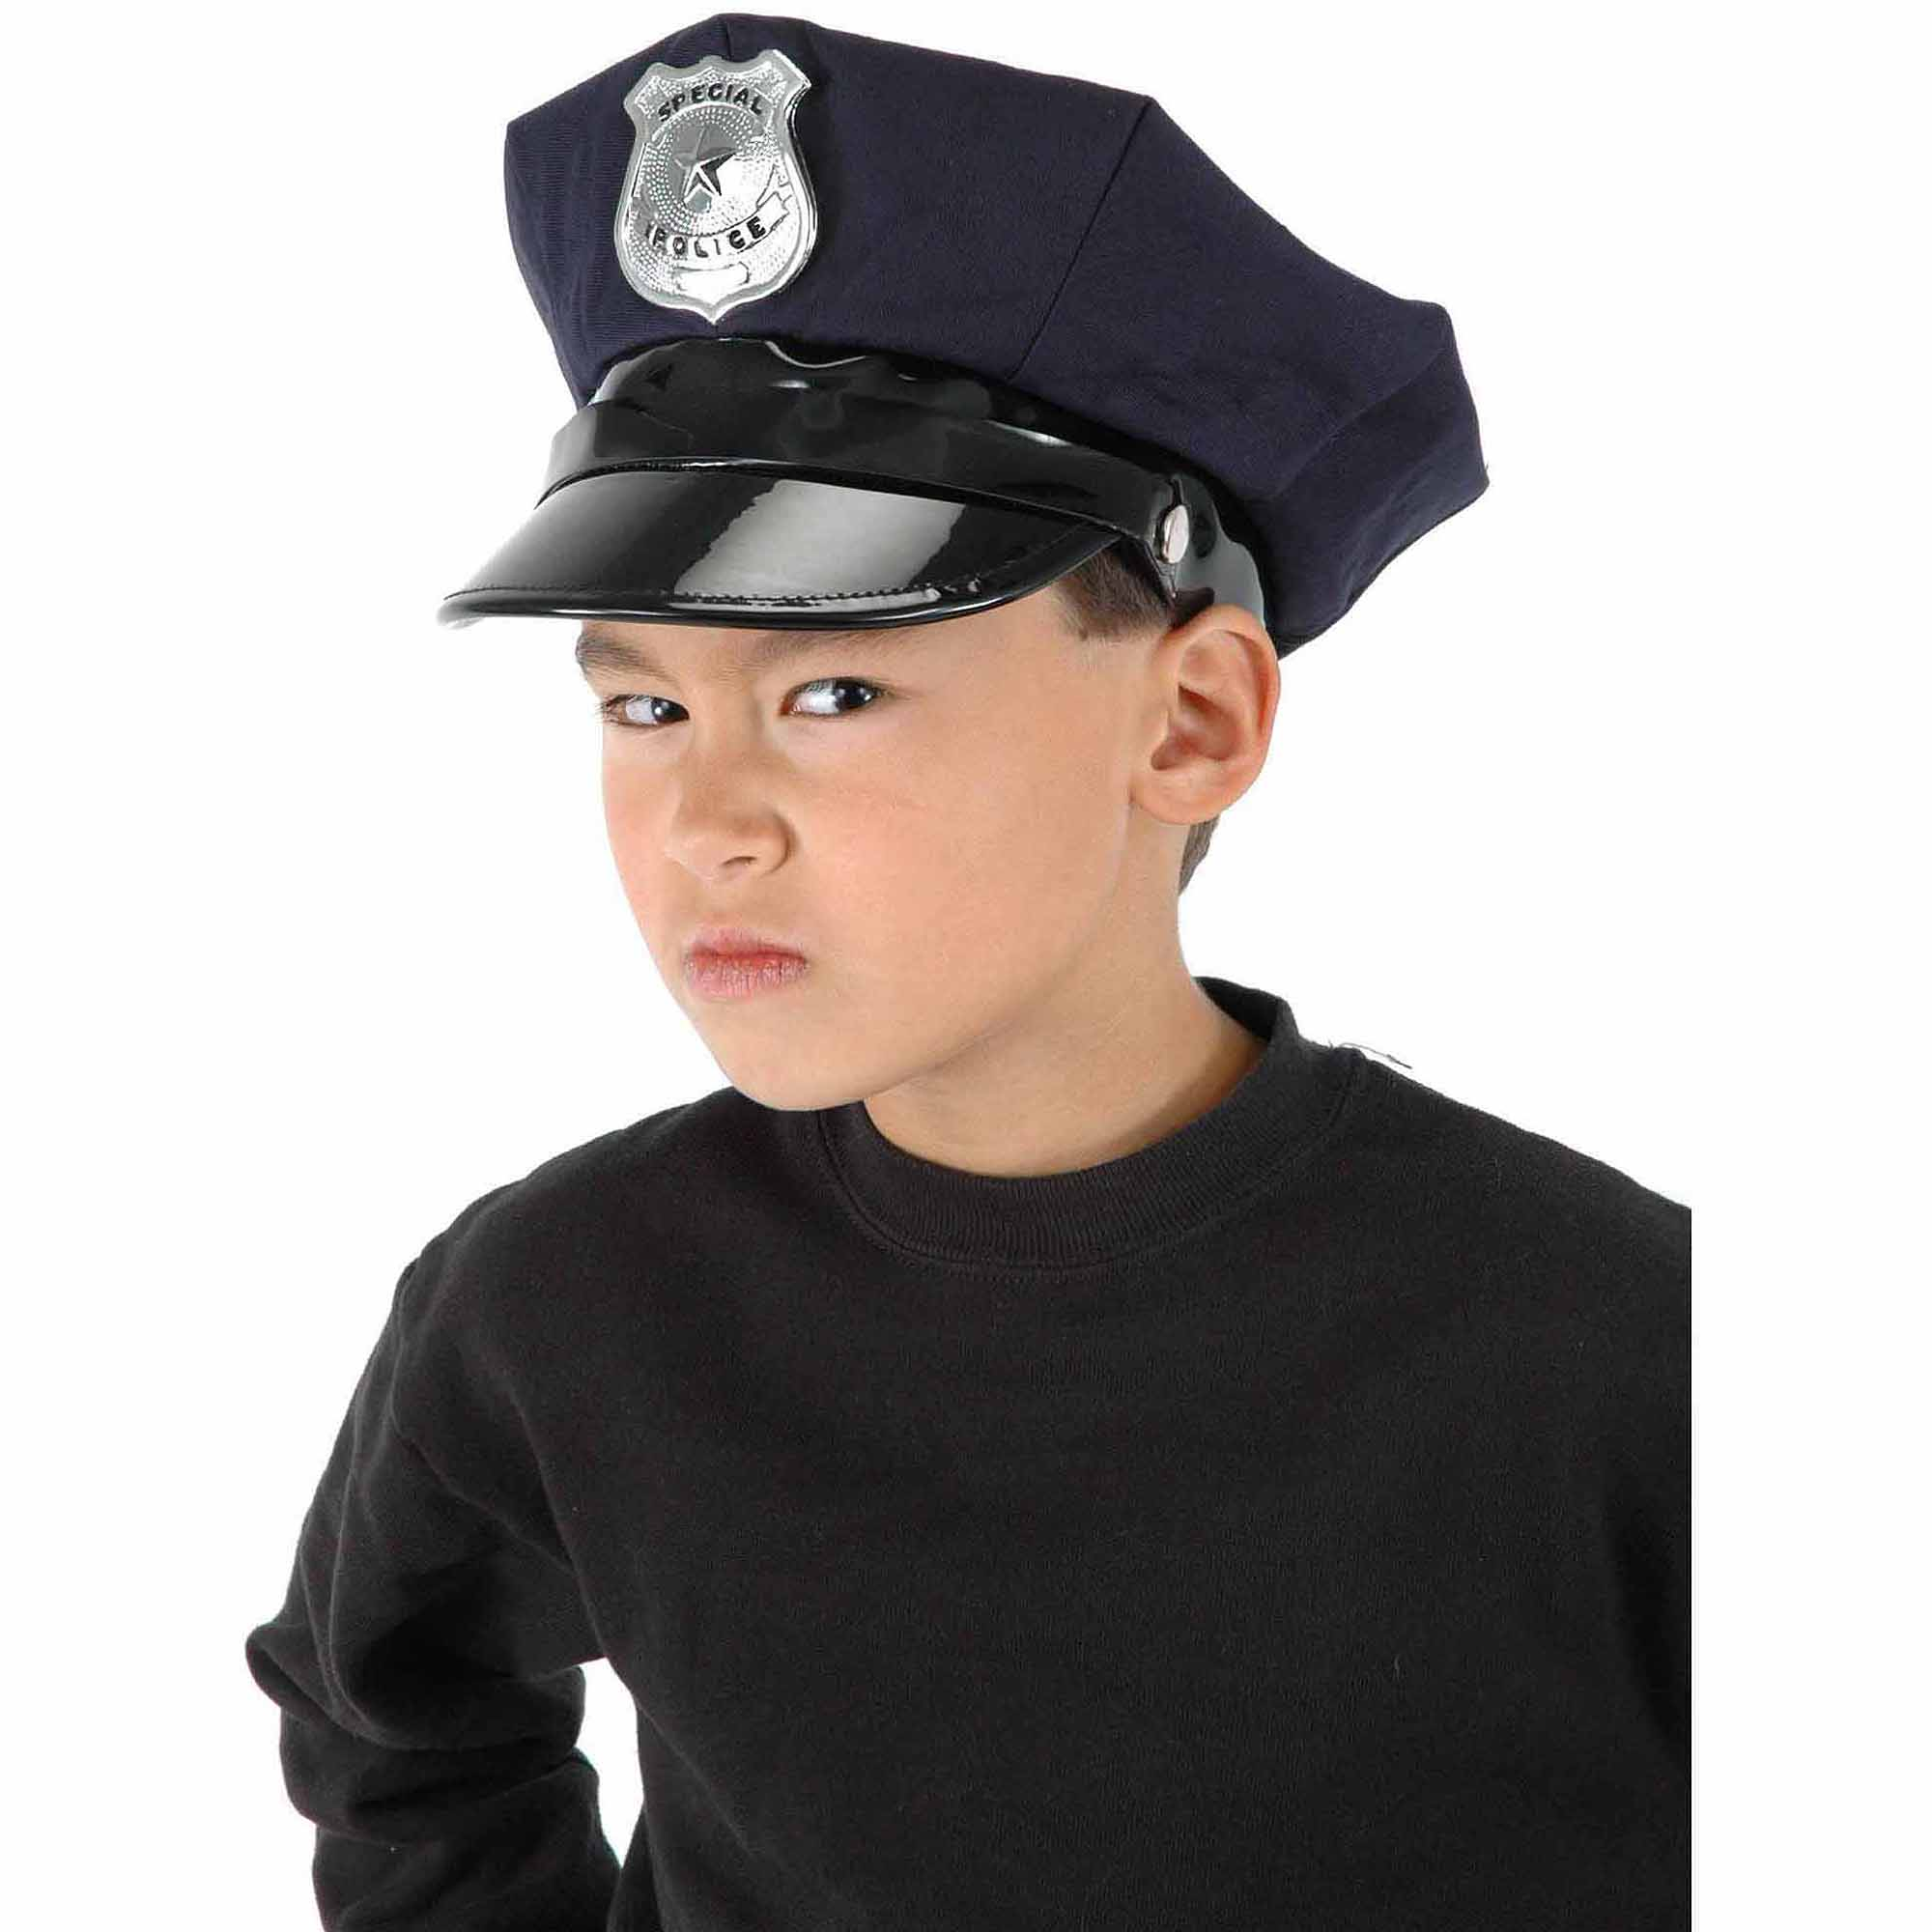 Police Chief Child Halloween Costume Accessory